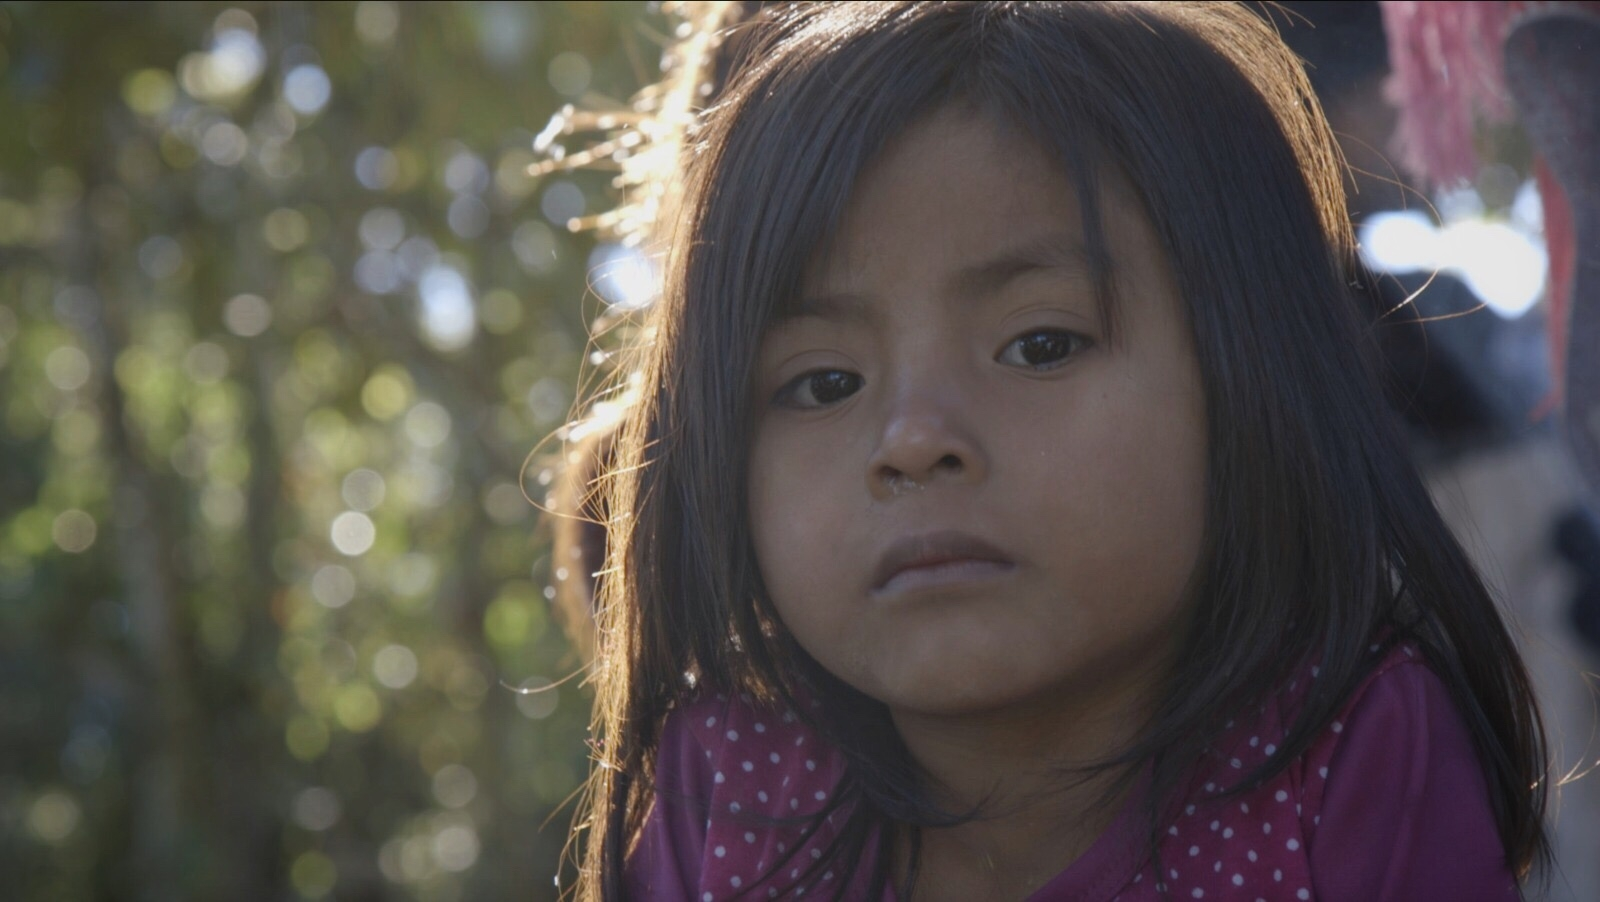 Since mid-October 2017, more than 5000 Tzotzil indigenous people in Chalchihuitán have been displaced by paramilitary activity triggered by a territorial dispute. Automatic gunfire, burnt houses, and people hiding in the mountains for 2-3 months. This is the same set of events that happened before the Acteal massacre 20 years ago in Chiapas, Mexico, when 45 peaceful Tzotzil indigenous people were killed by PRI-aligned paramilitaries while local security forces stood by and let it happen.   Here  are some testimonials I filmed in Chalchihuitán, the day before the Acteal Anniversary.  And here is the  full report  on Animal Politico which came out the day after they left the camps.  Read my colleague Katie Schlechter's report that came out on the anniversary of the Acteal massacre here:  http://www.aljazeera.com/news/2017/12/mexico-renewed-land-dispute-displaces-5000-chiapas-171222163355229.html